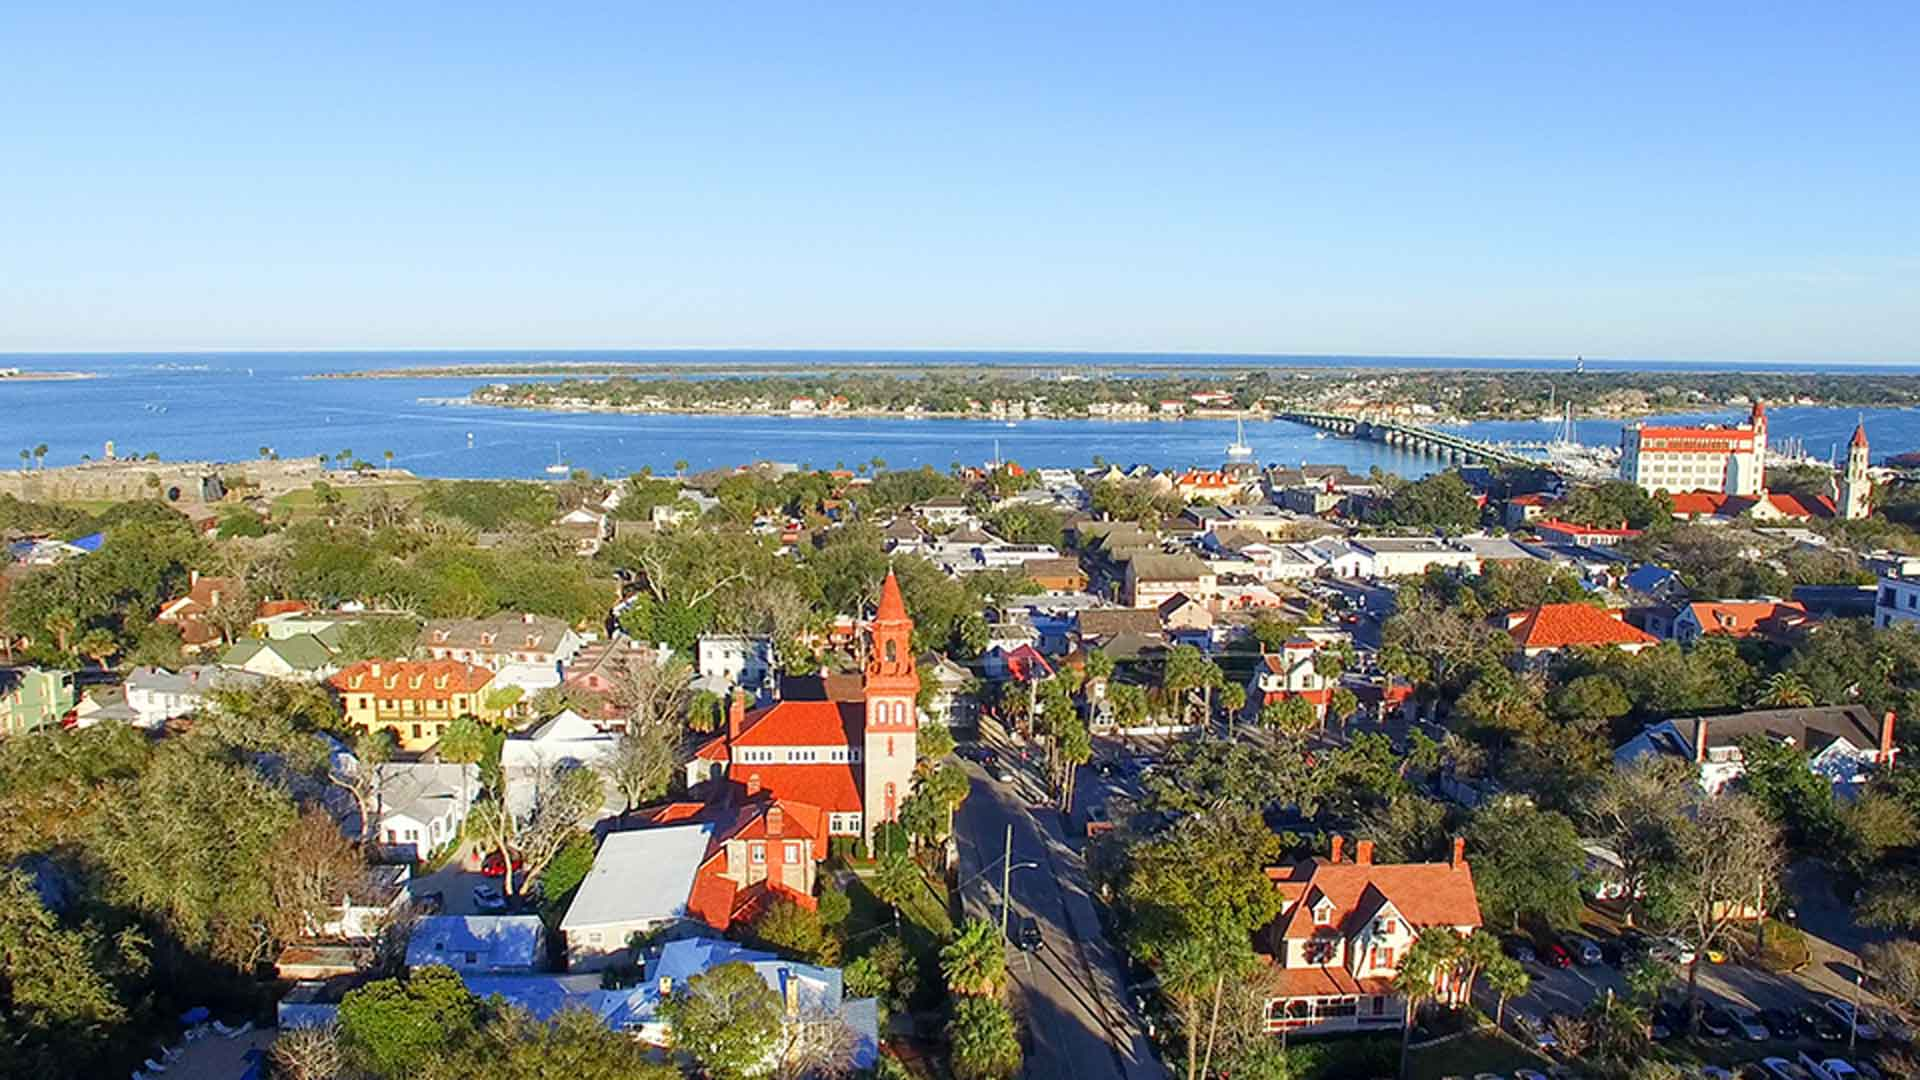 photo of st augustine florida for urban planning course